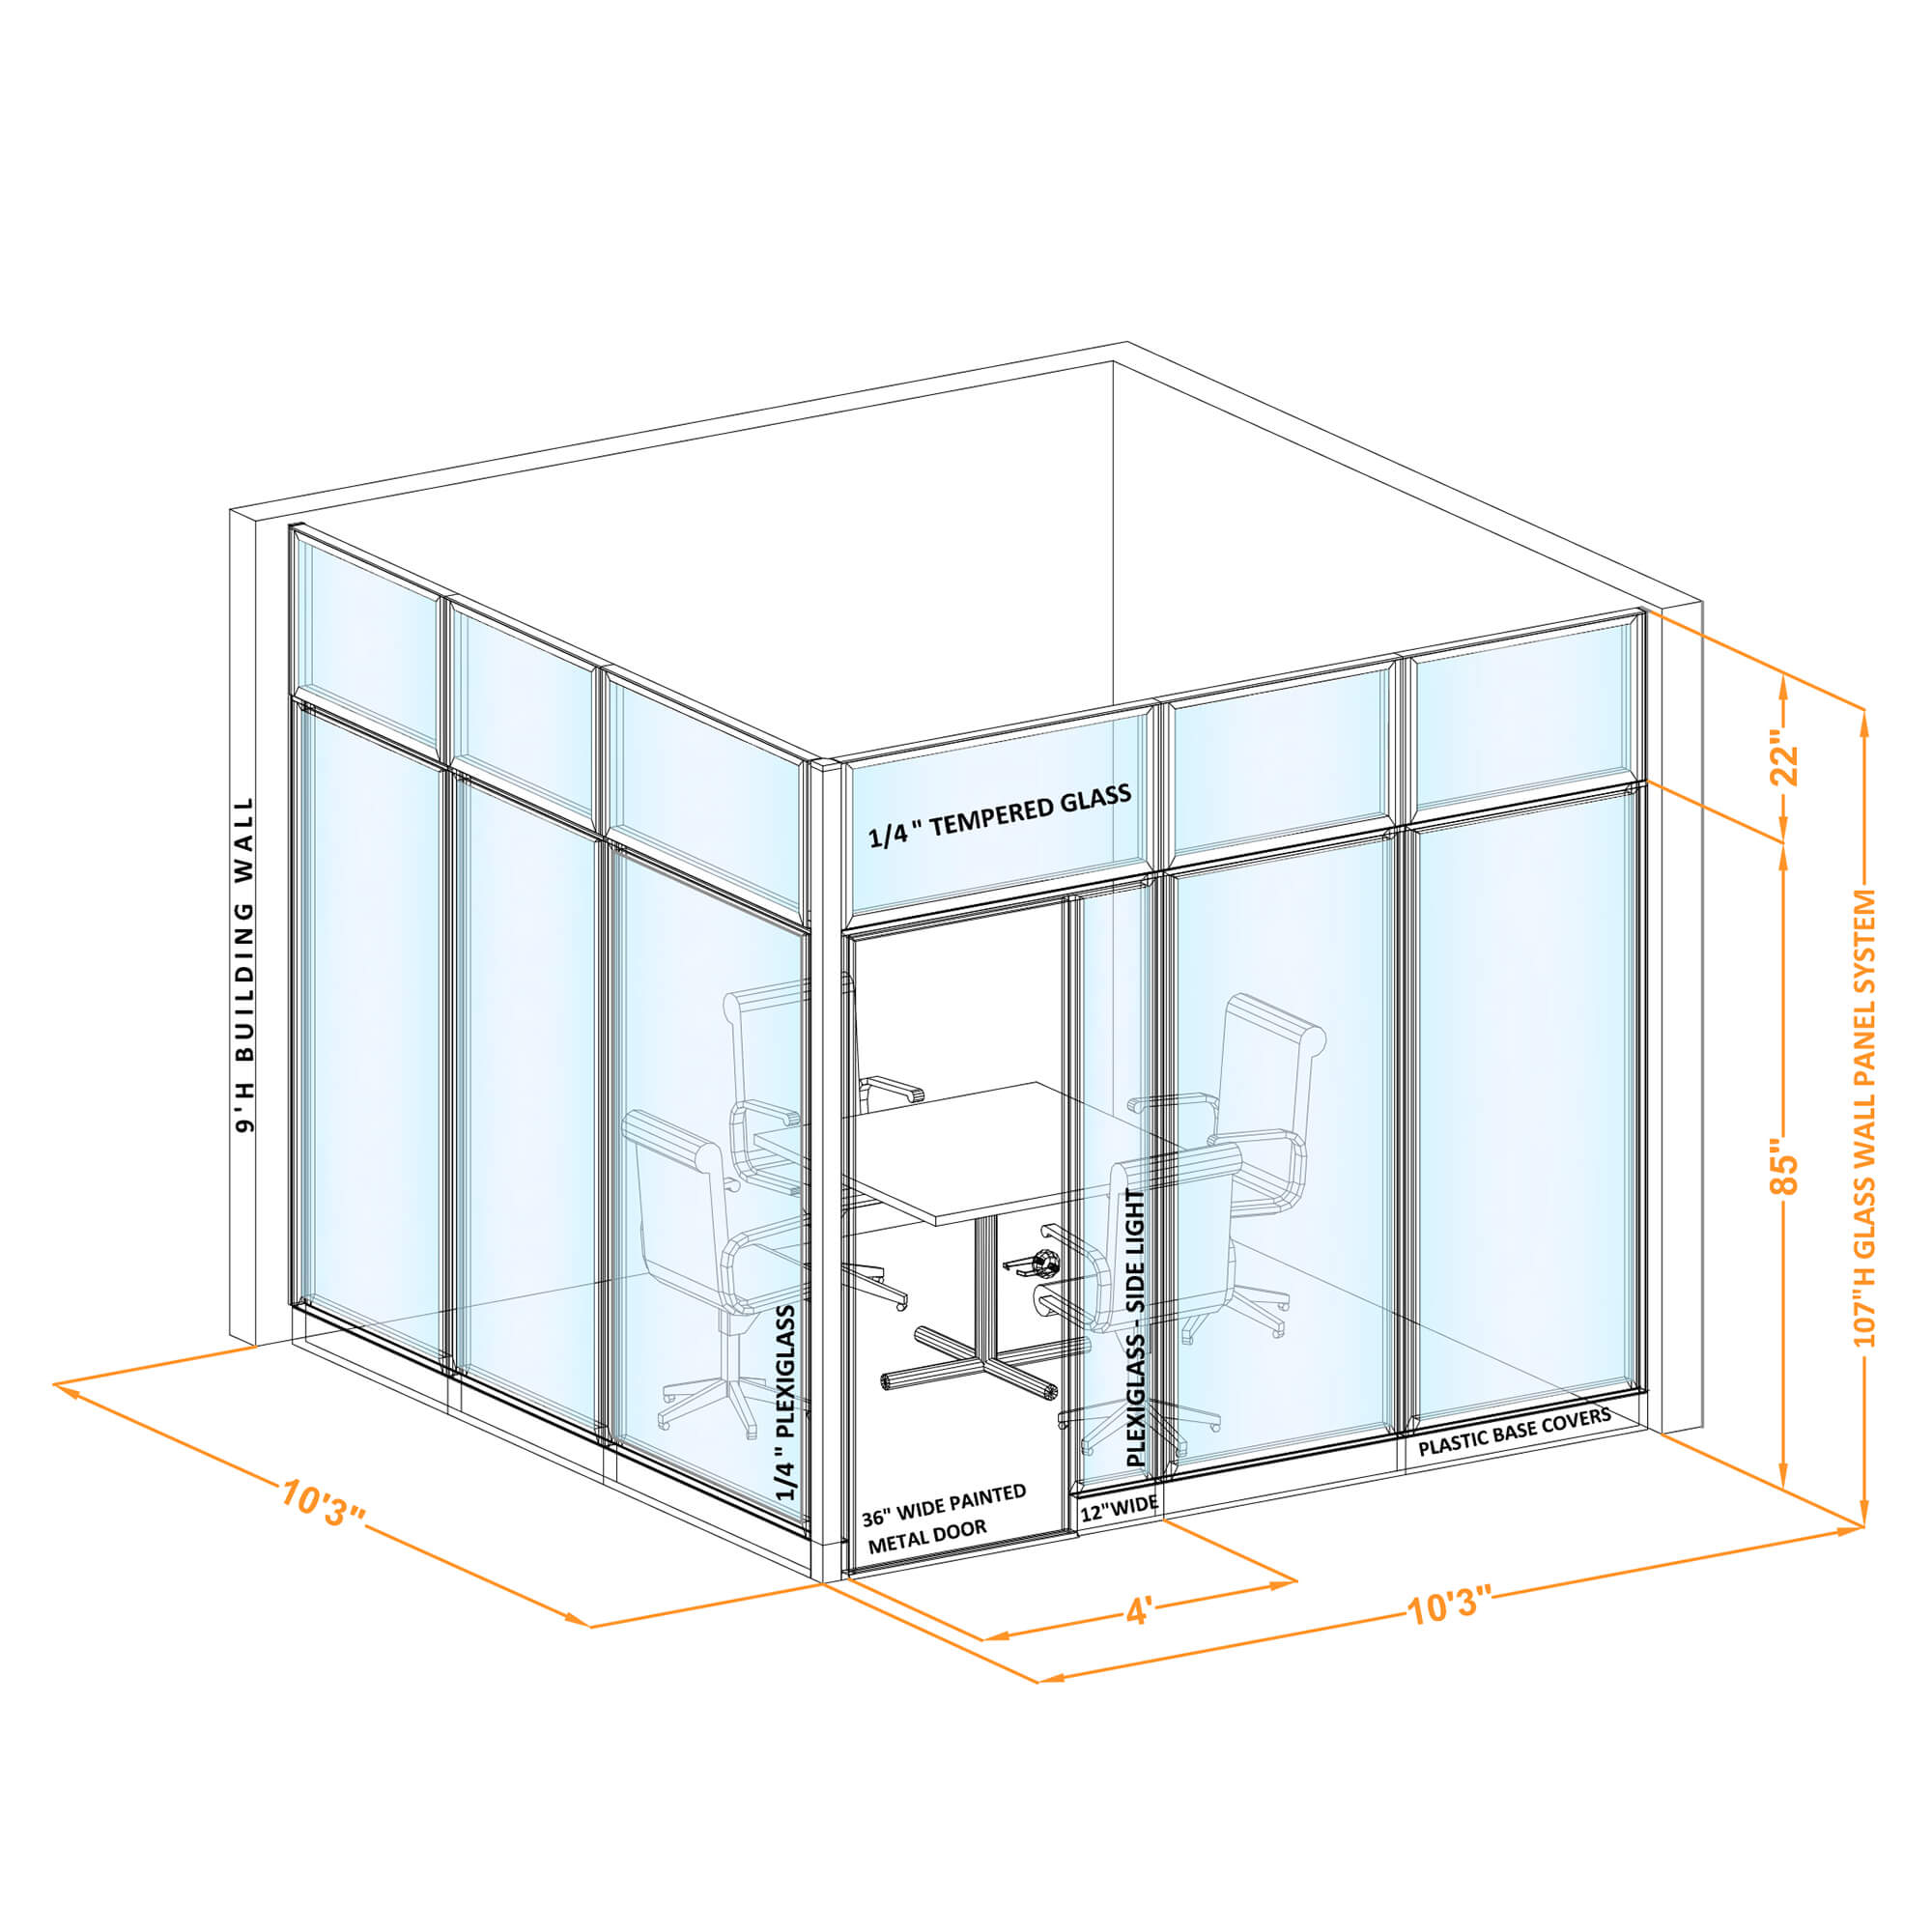 Conference room glass wall GWCR L 100x100x1070